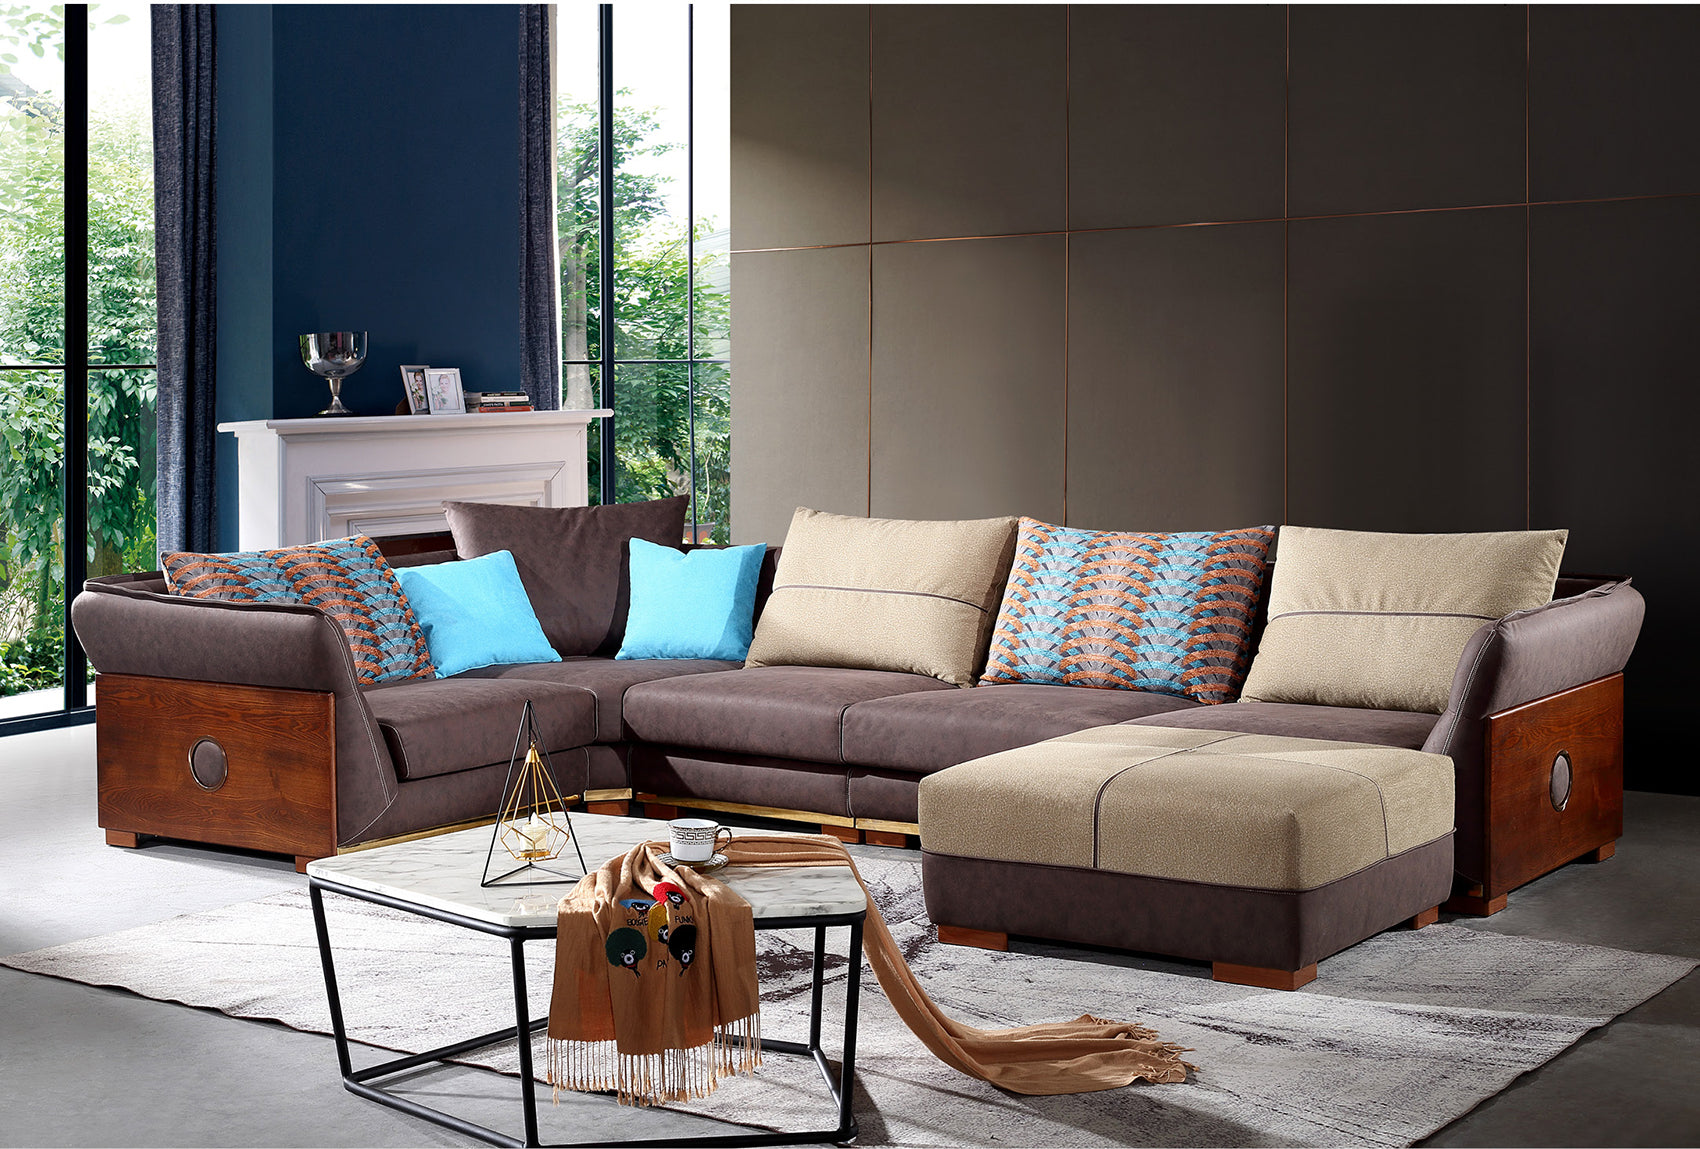 Corner sectional leath-aire sofa-JKJYS20